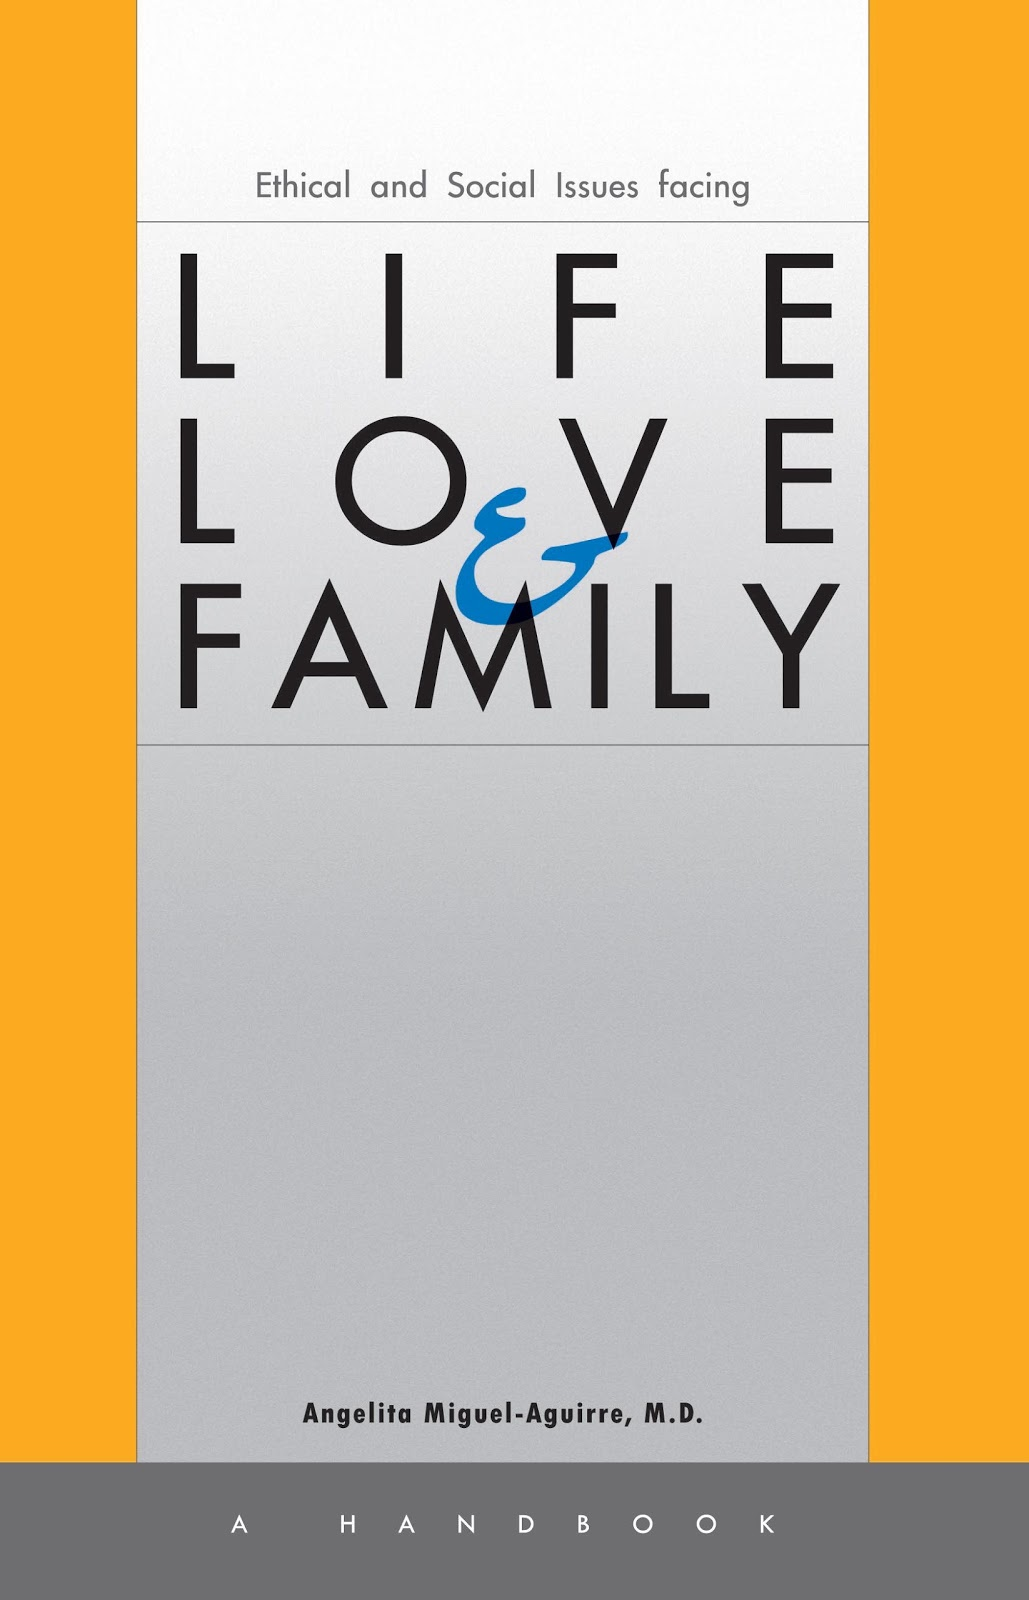 the families of america facing the problems with social life Difficulties married couples face changes the relationship with spouse, family, friends, social it draws focus away from one's family life and relationship.